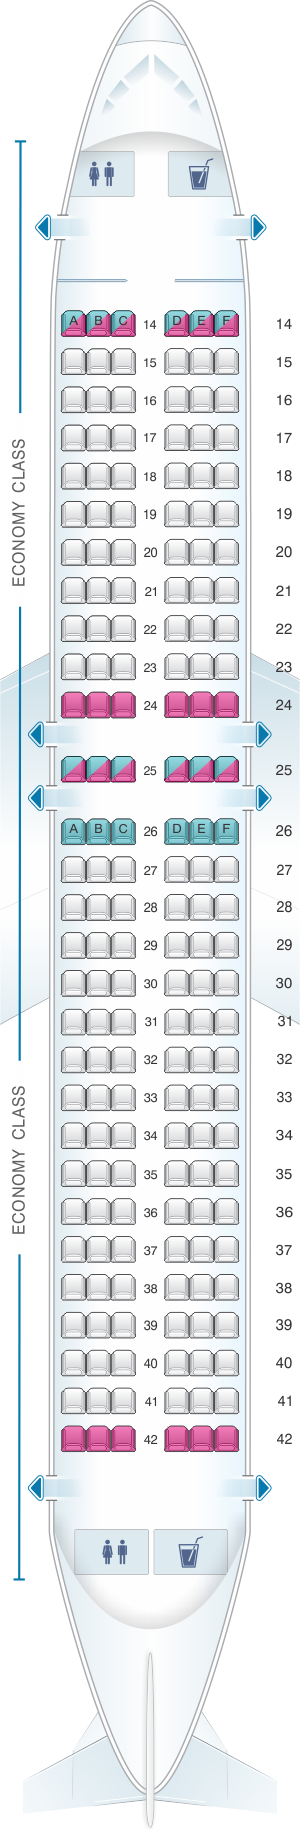 Seat map for Azal Azerbaijan Airlines Airbus A320 all economy